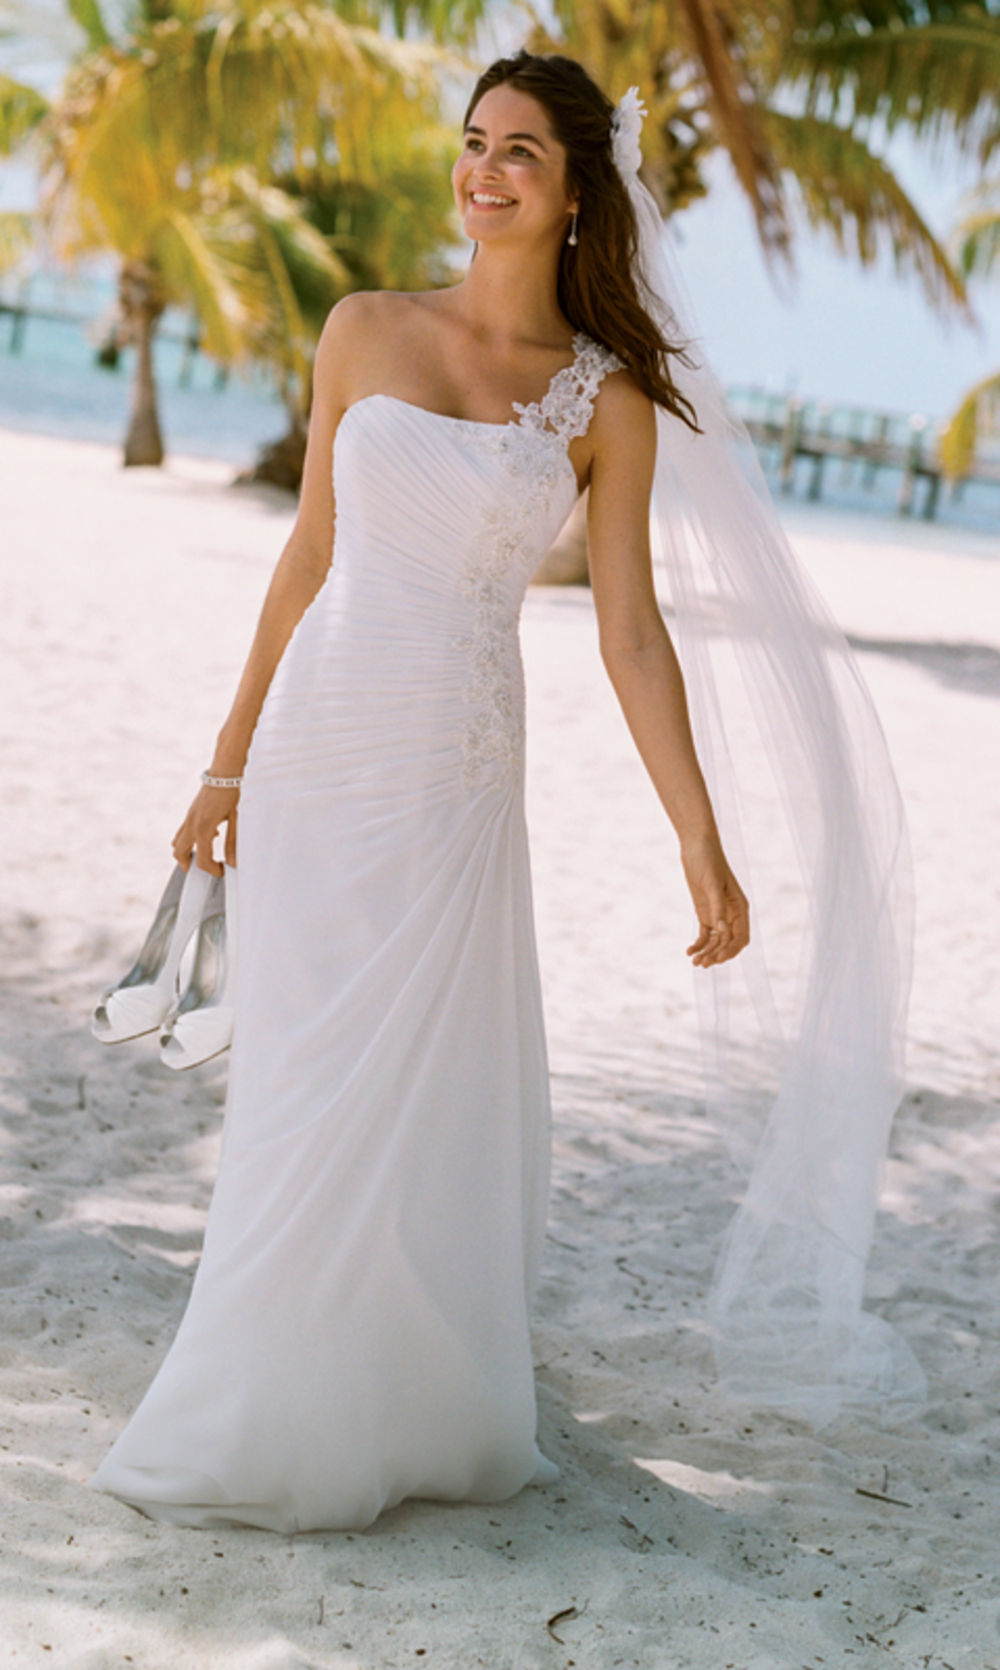 Amazing David's Bridal Beach Wedding Dresses